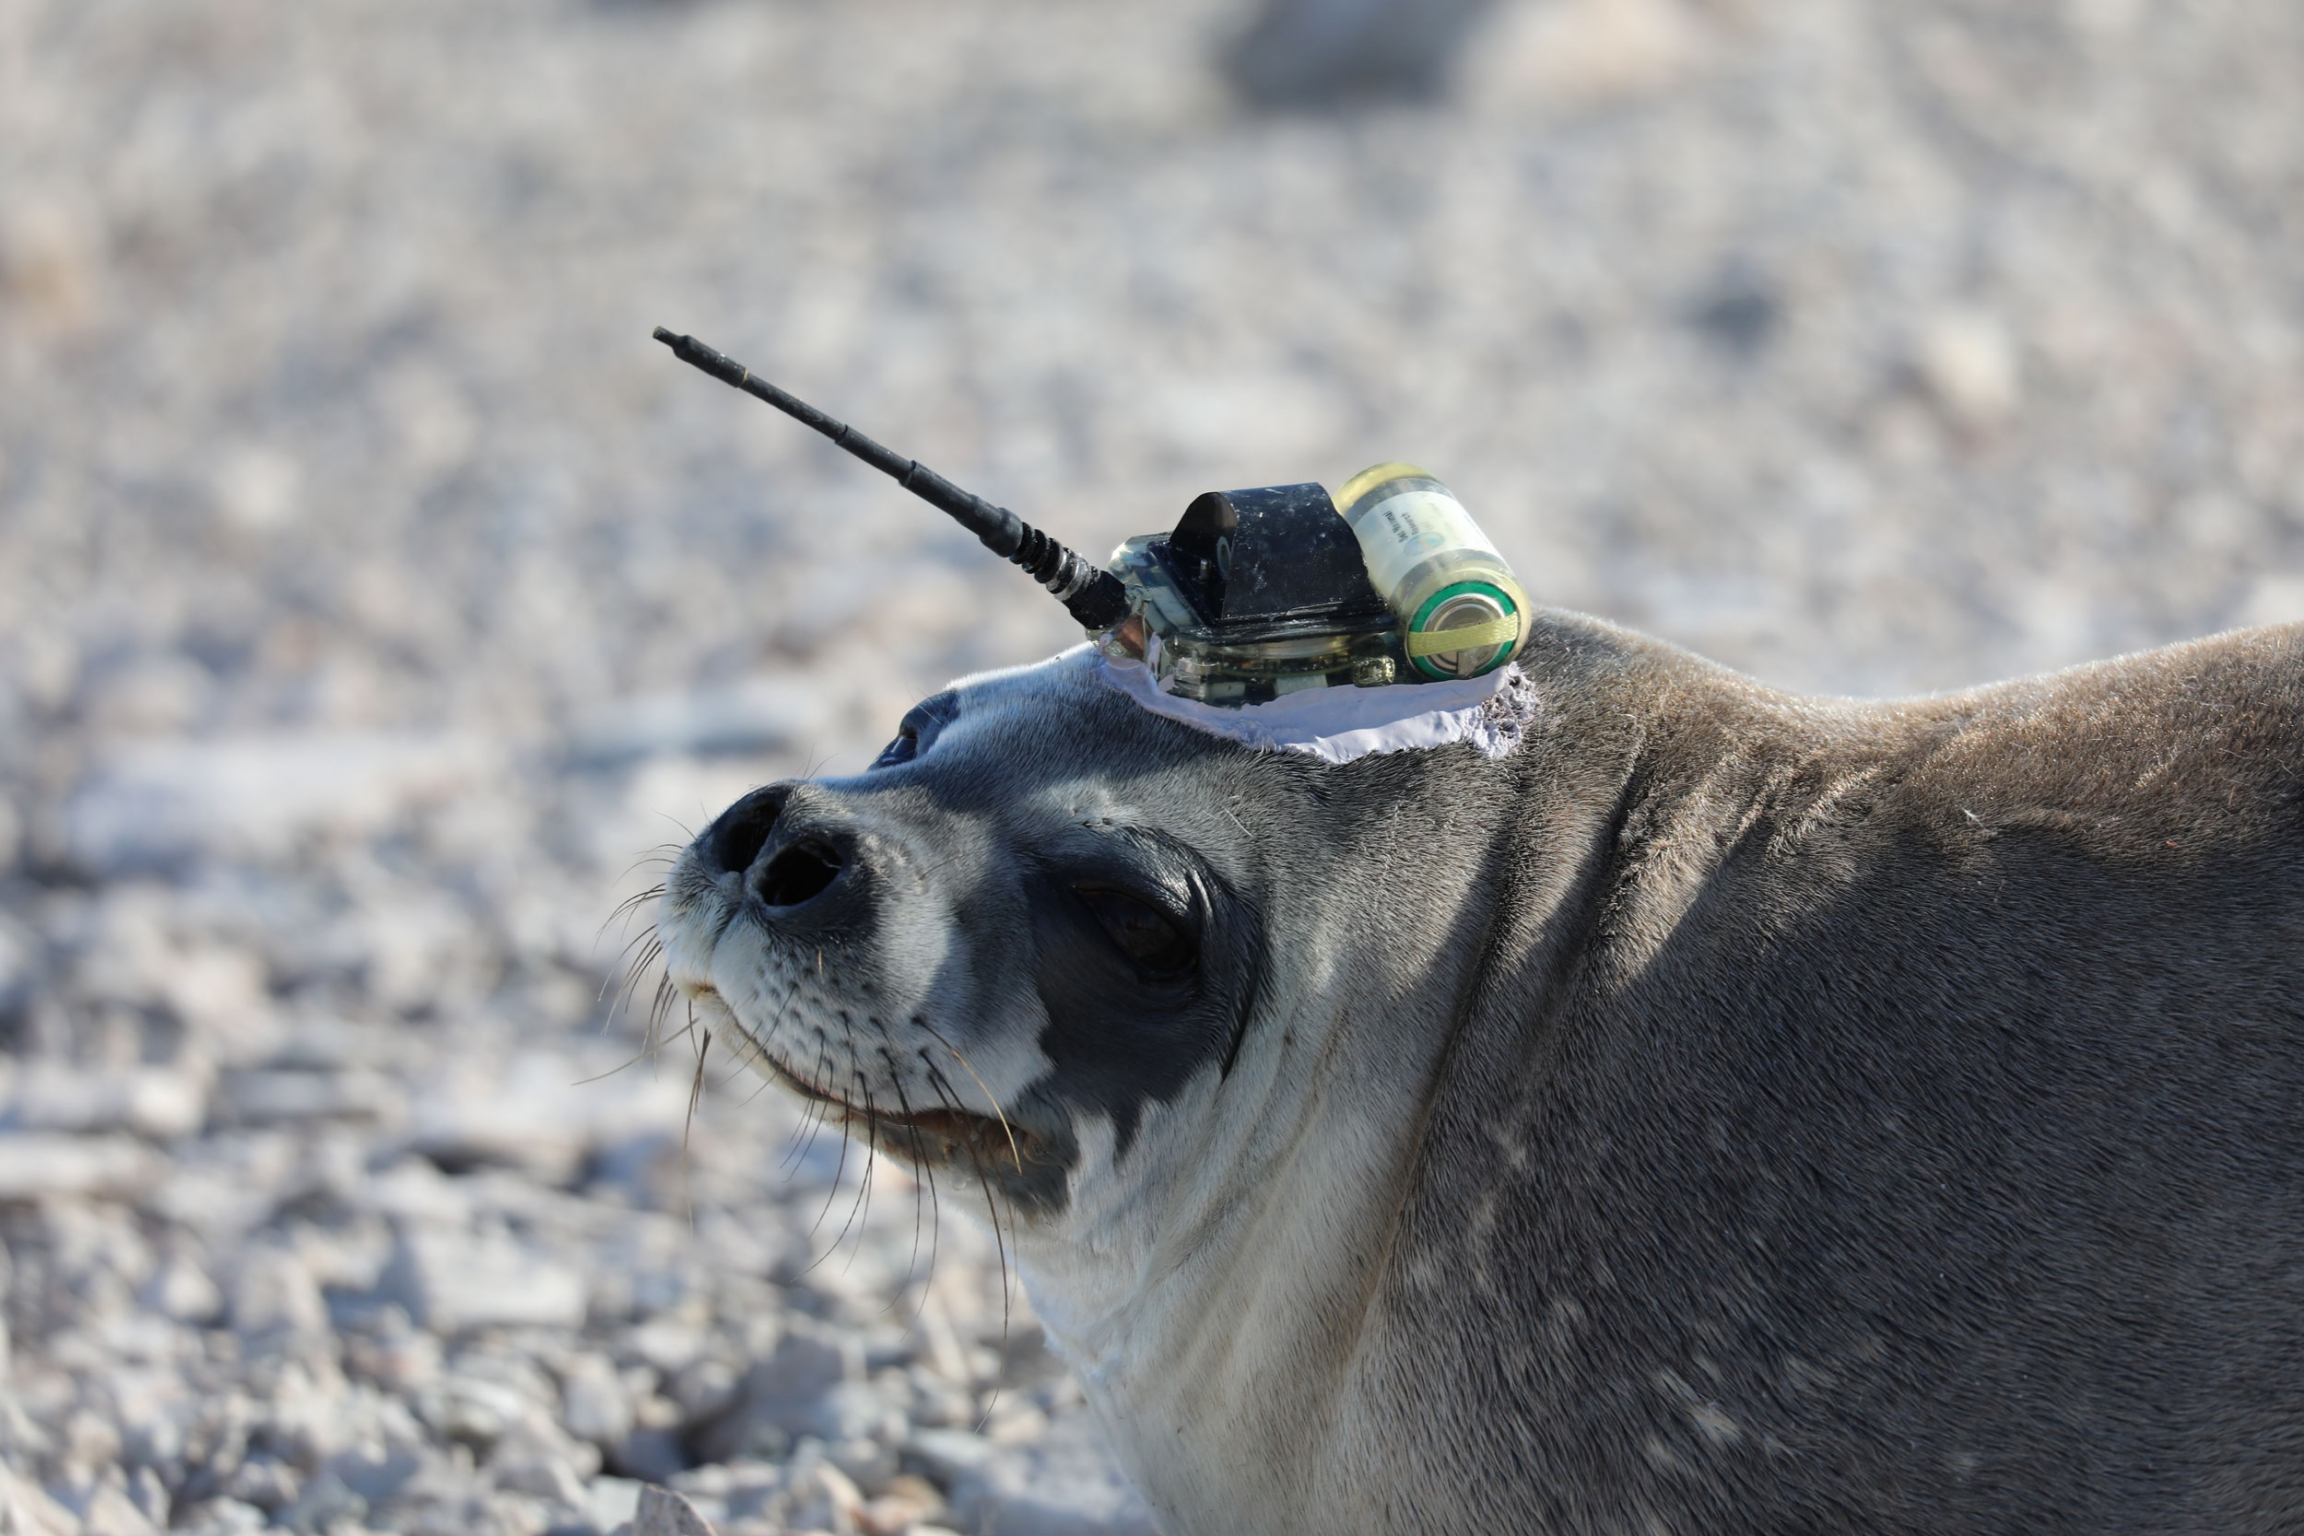 A seal turns it head. Atop its head is the transponder that will track climate data.